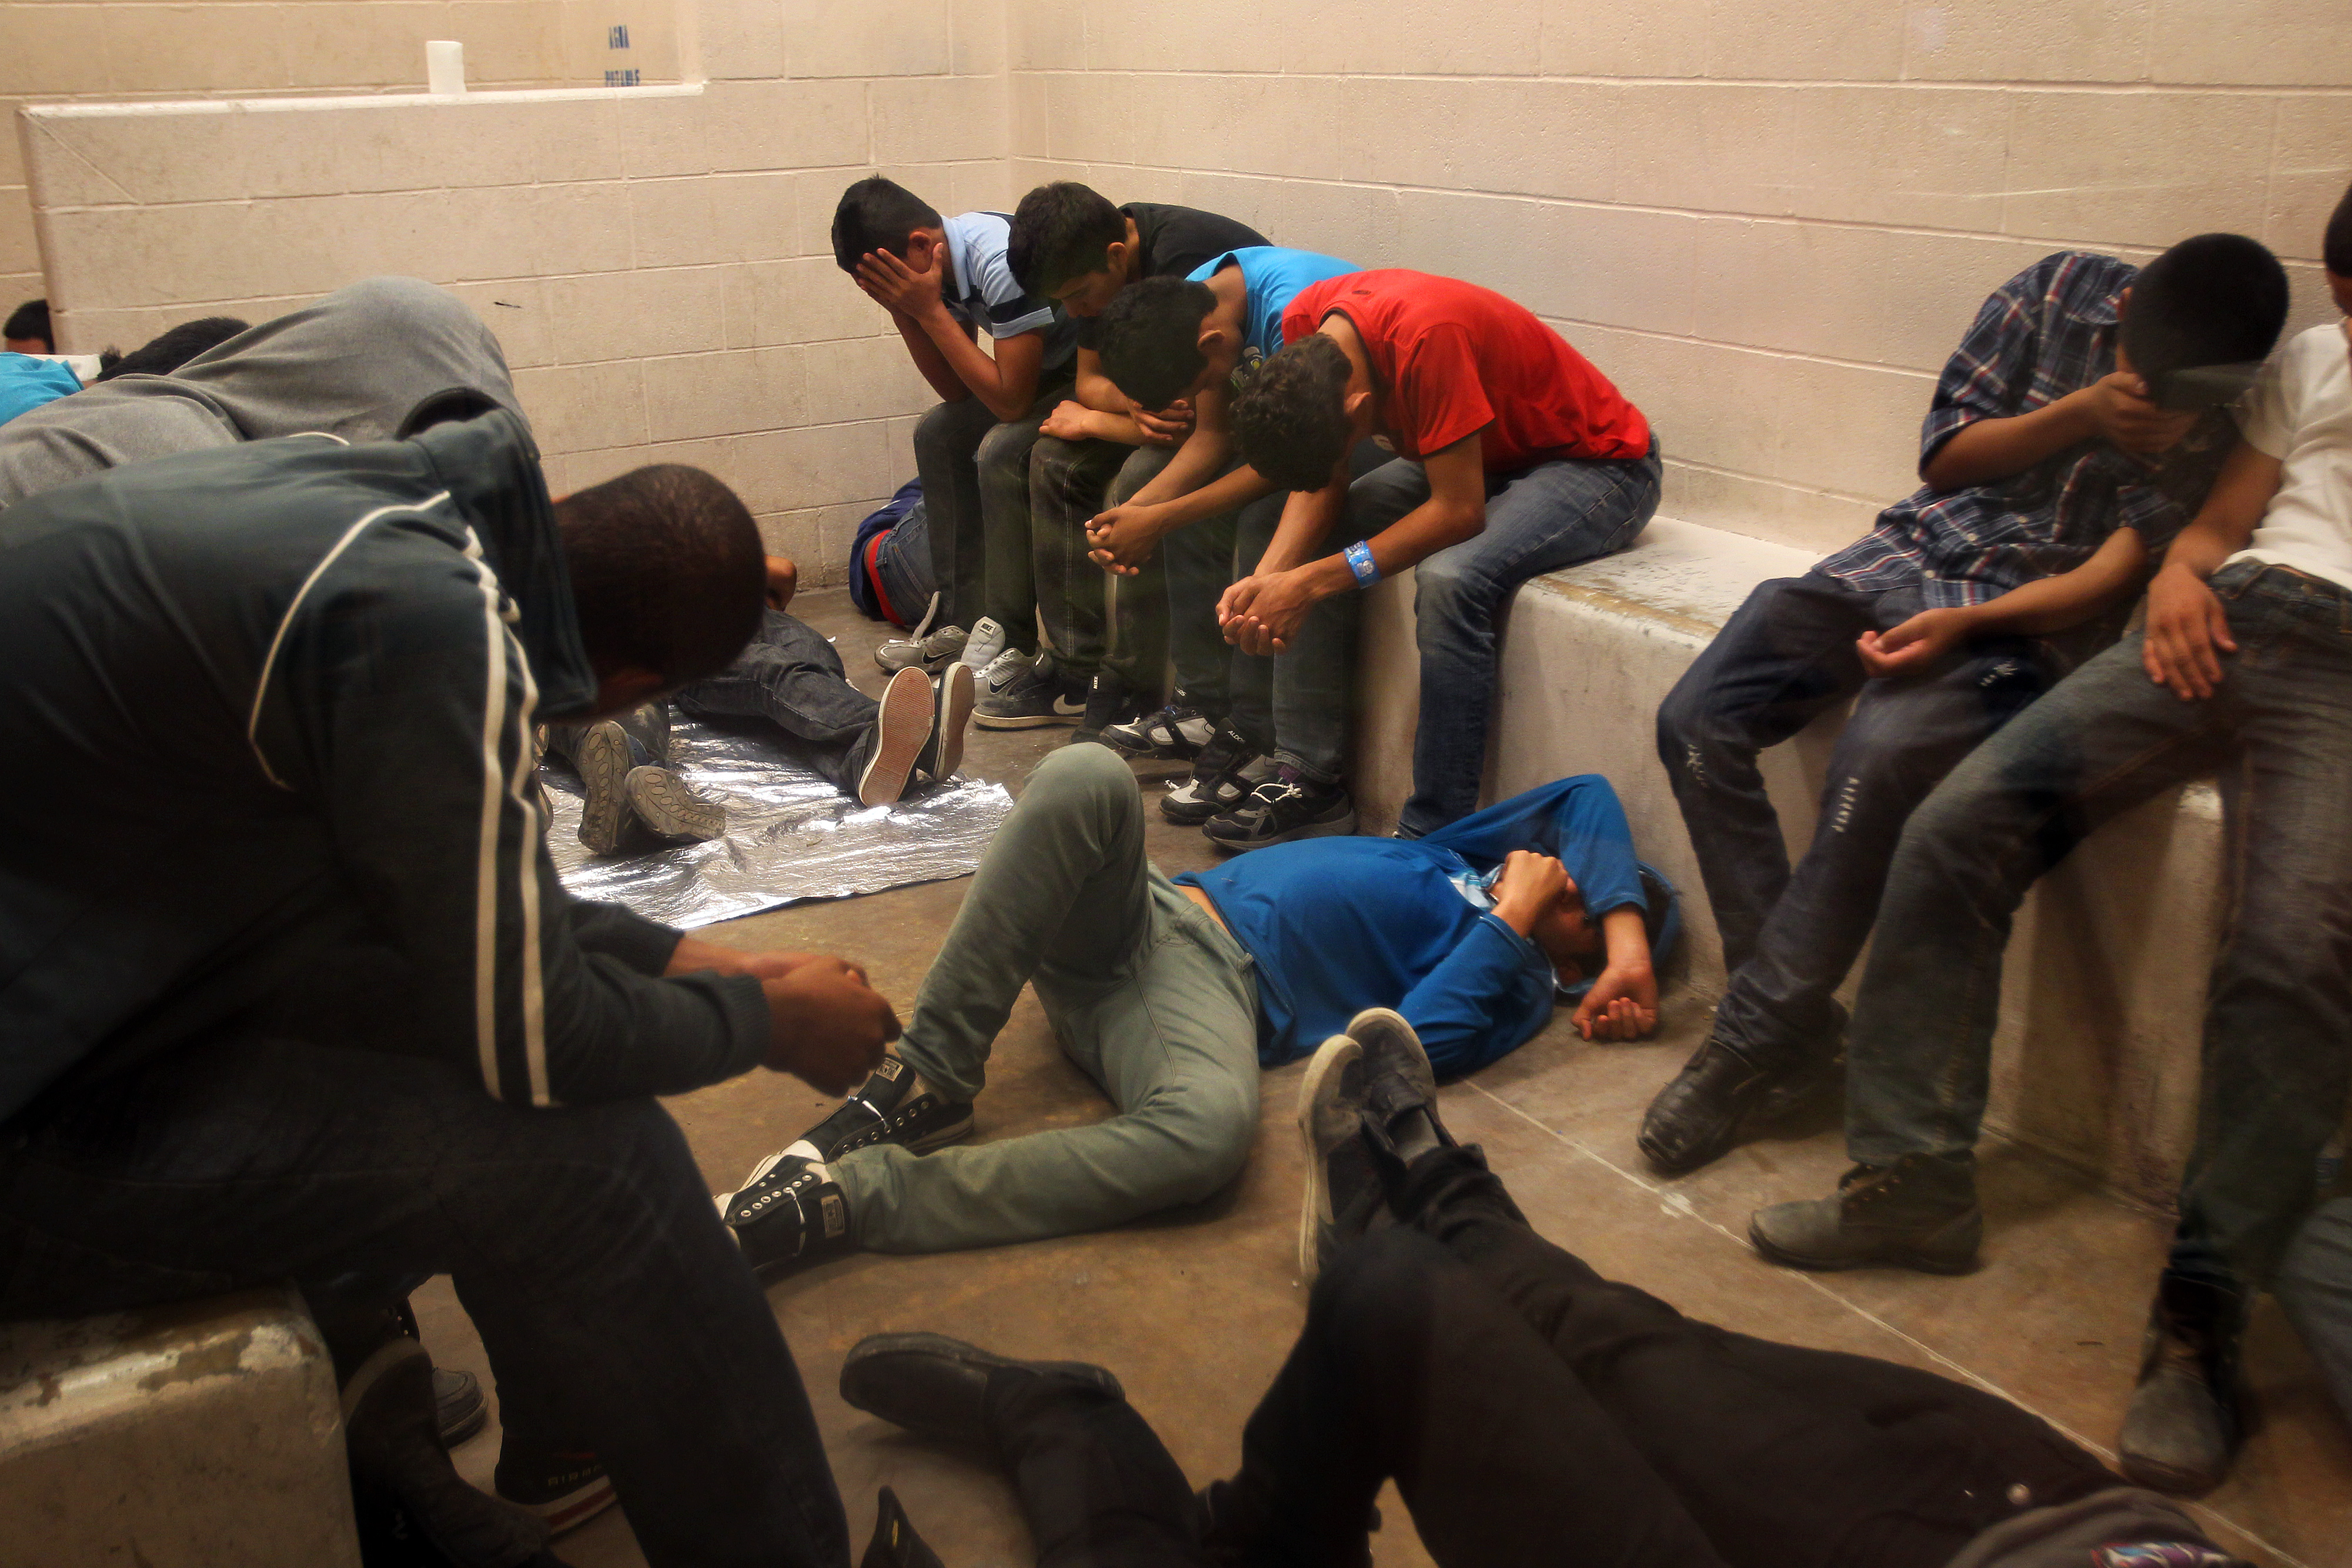 Immigrants who have been caught crossing the border illegally are housed inside the McAllen Border Patrol Station in McAllen, Texas where they are processed on July 15, 2014 in McAllen, Texas.